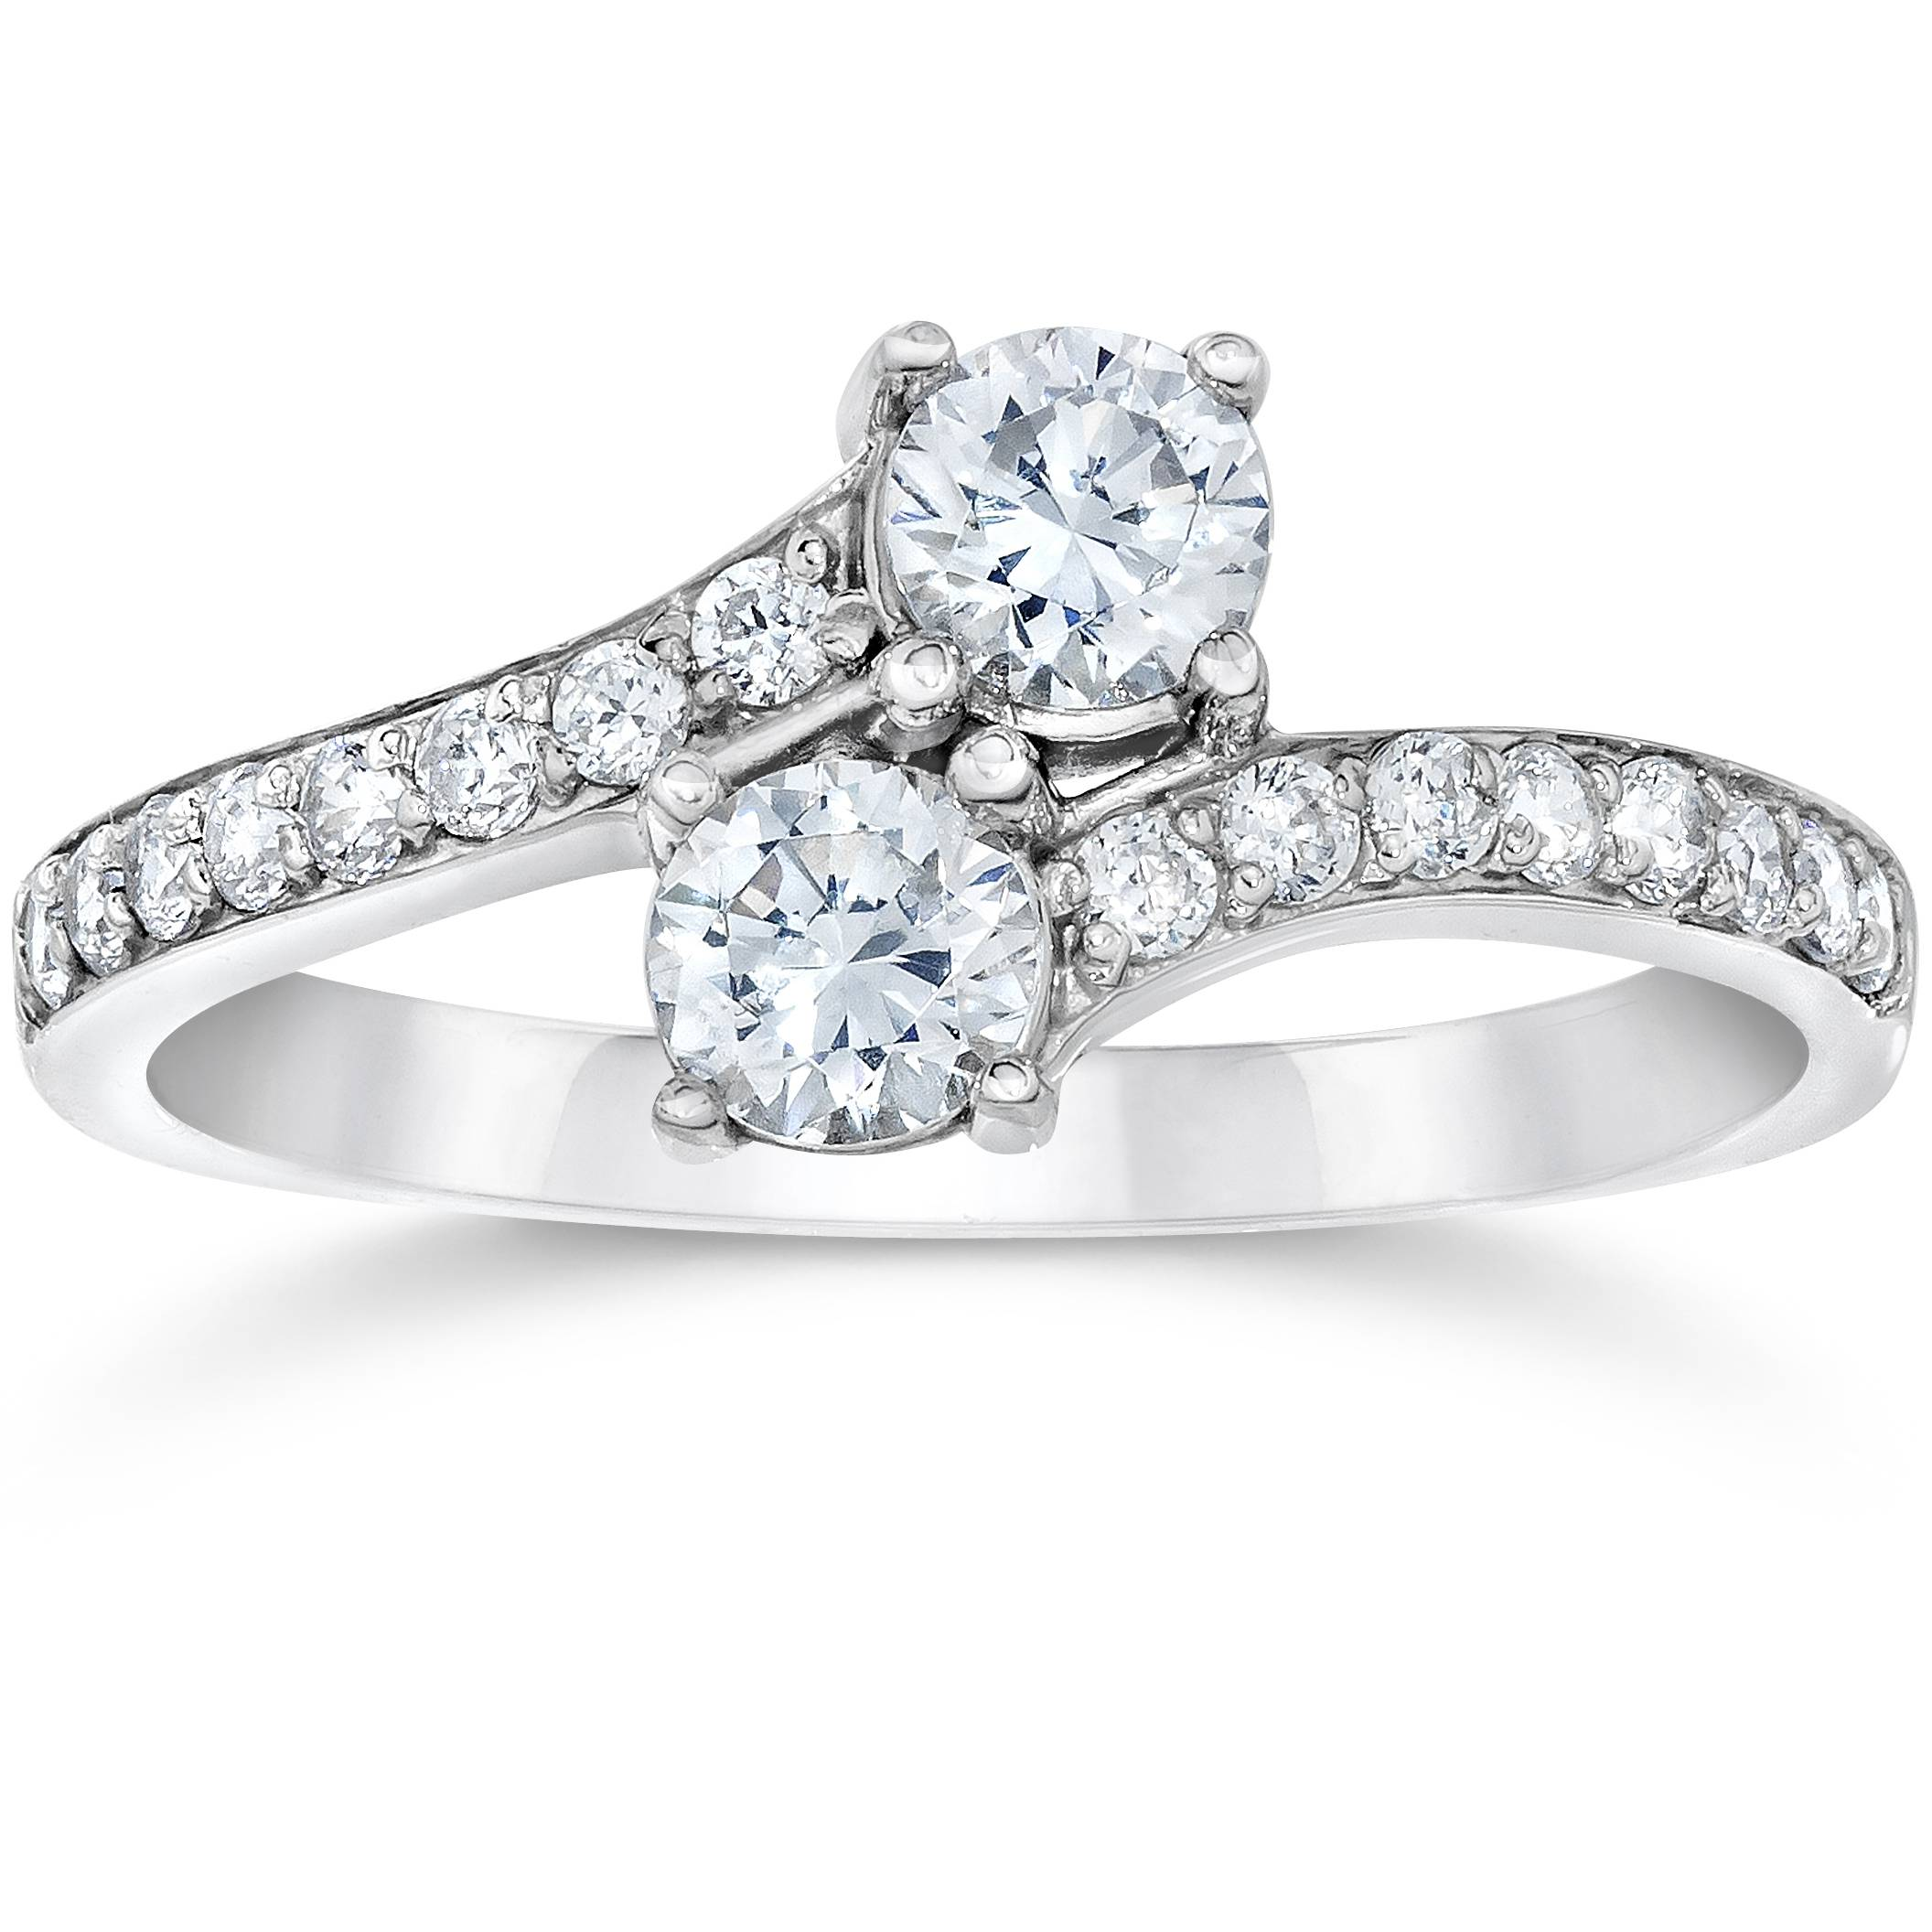 Kay Jewelers One Carat Diamond Ring